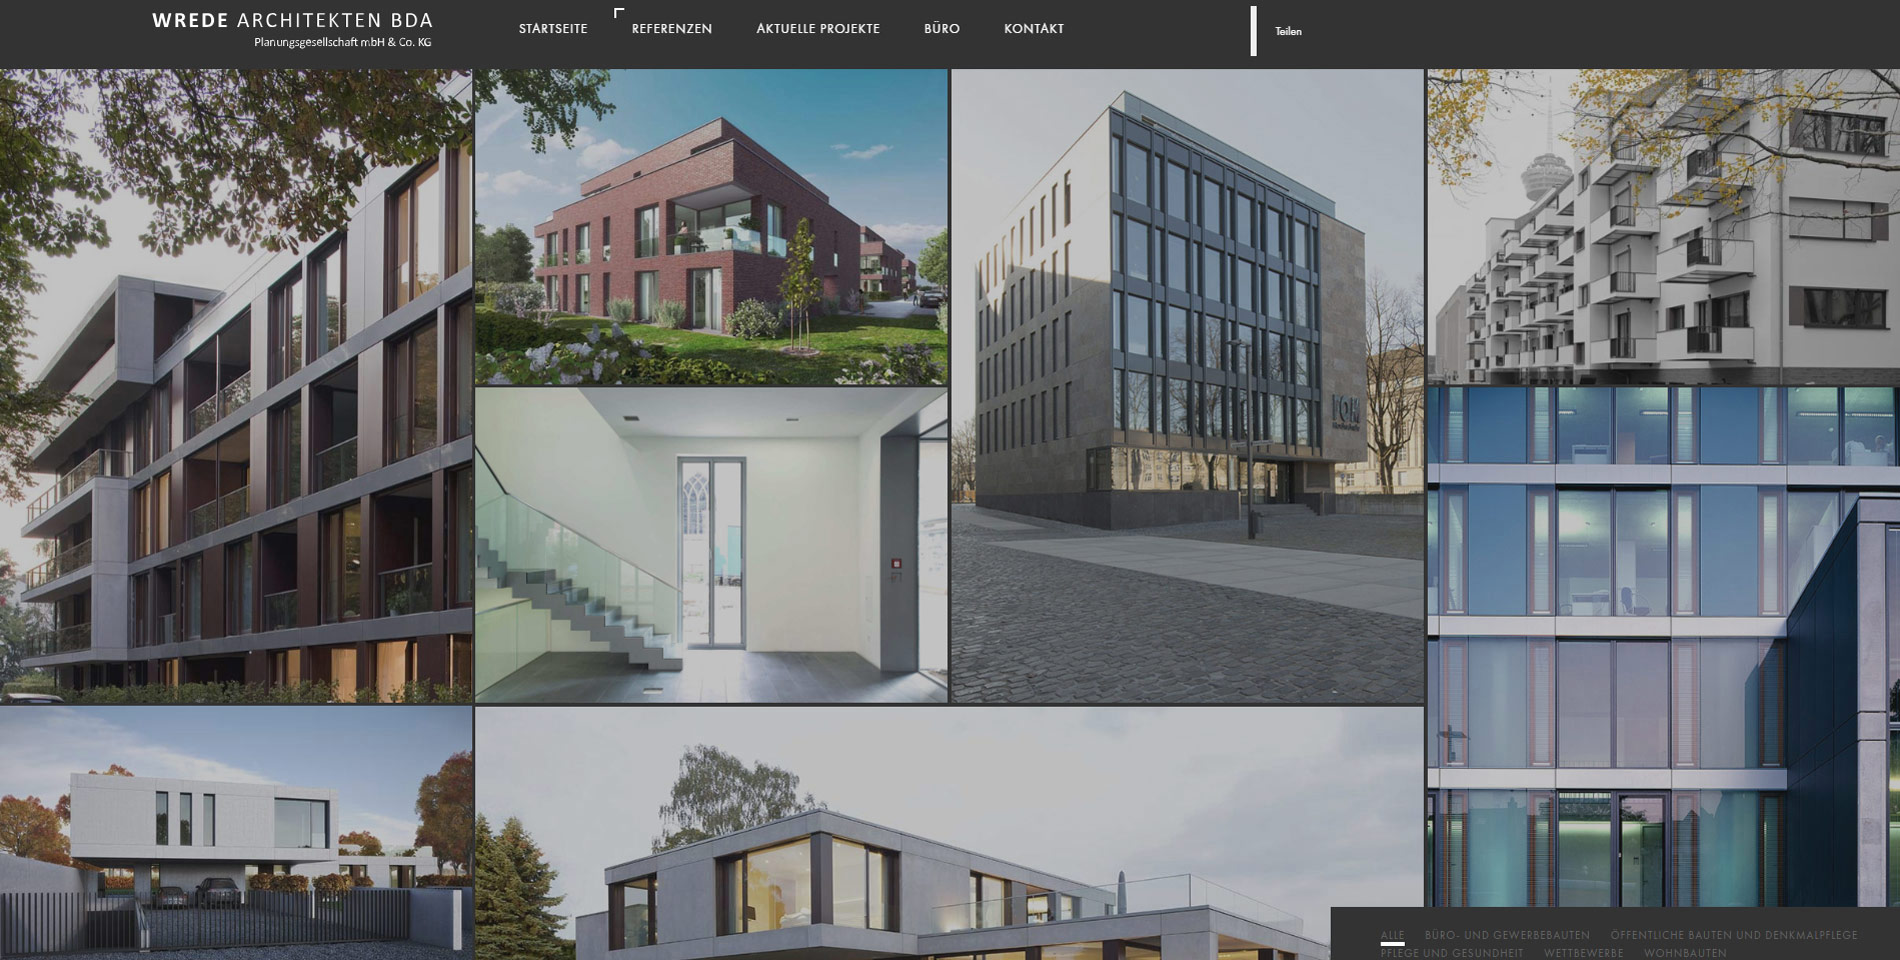 Website Wrede Architekten